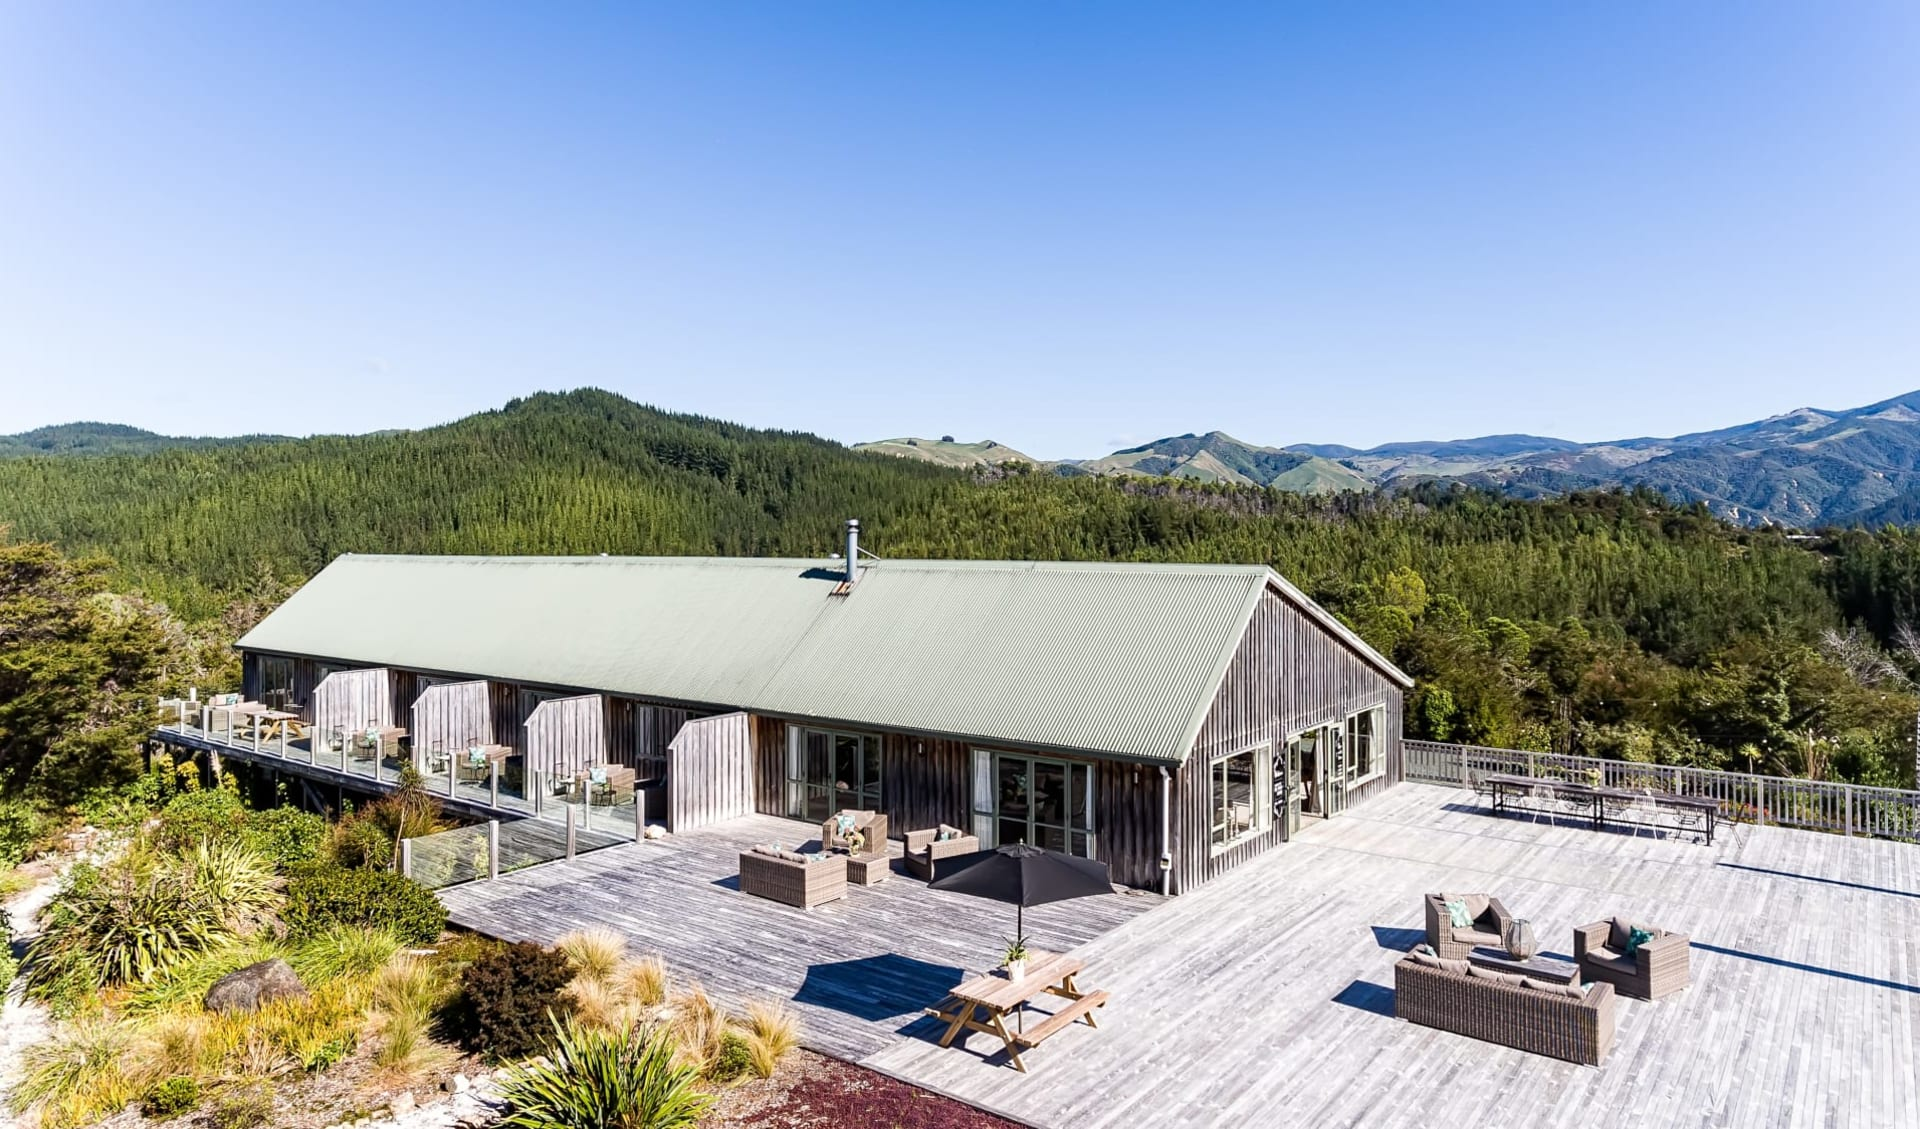 Split Apple Lodge in Kaiteriteri:  Split_Apple_Lodge_DJI_0828